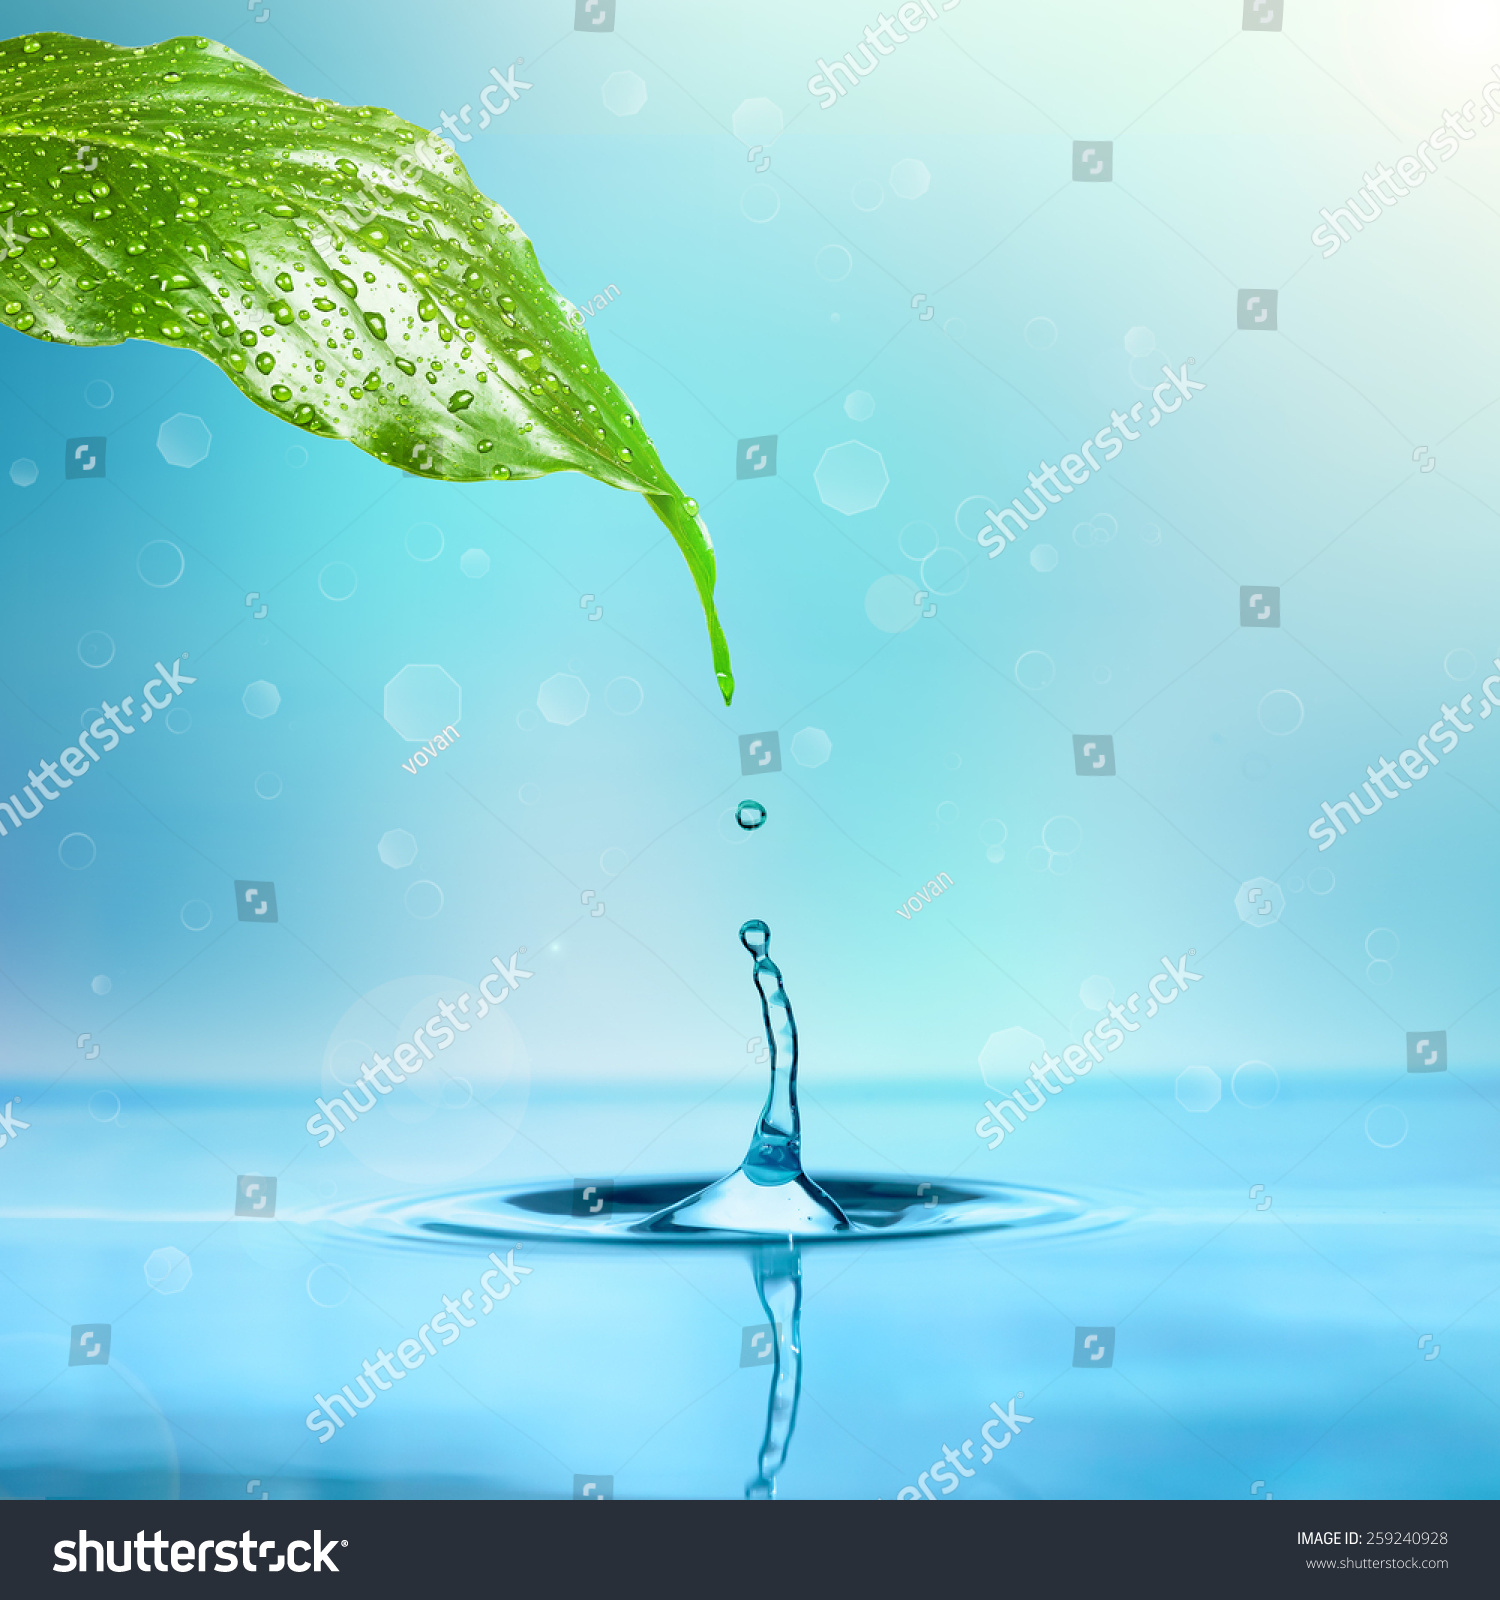 Tundish Dripping Into Water : Drop rain dripping into water leaf stock photo